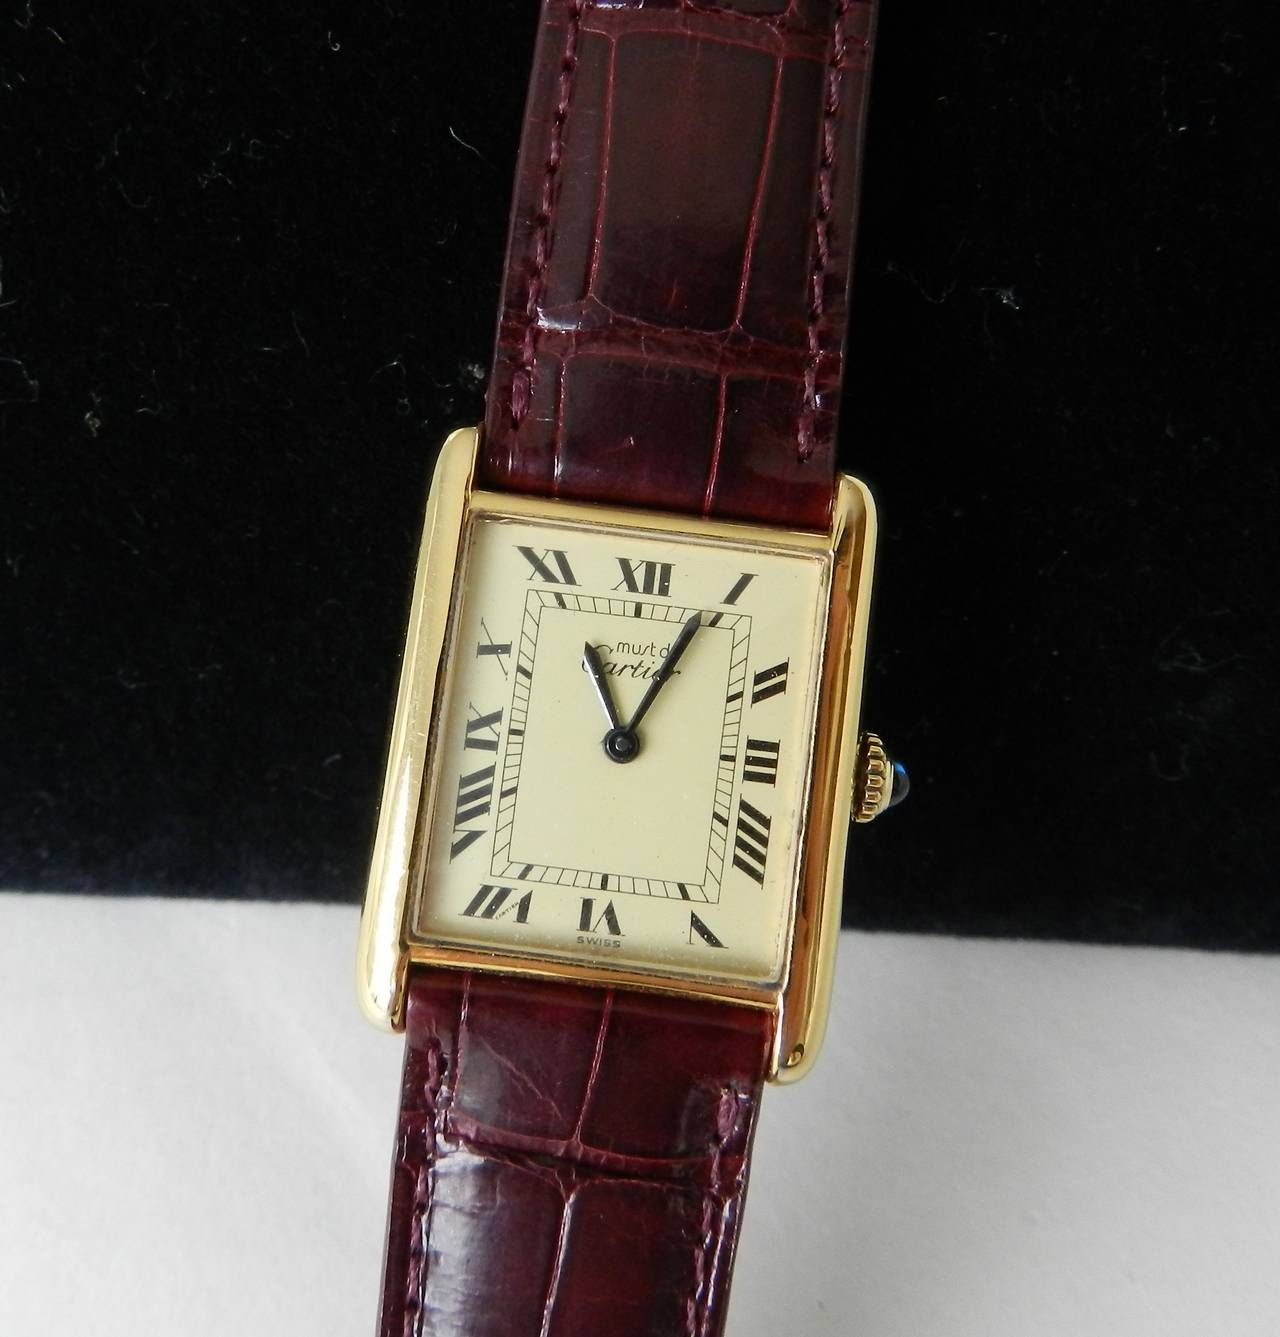 Vintage Must De Cartier Tank Watch Sterling Silver 925 Base With Gold Plate Sapphire Cabochon Turn Burgu Vintage Watches For Men Wrist Watch Vintage Watches